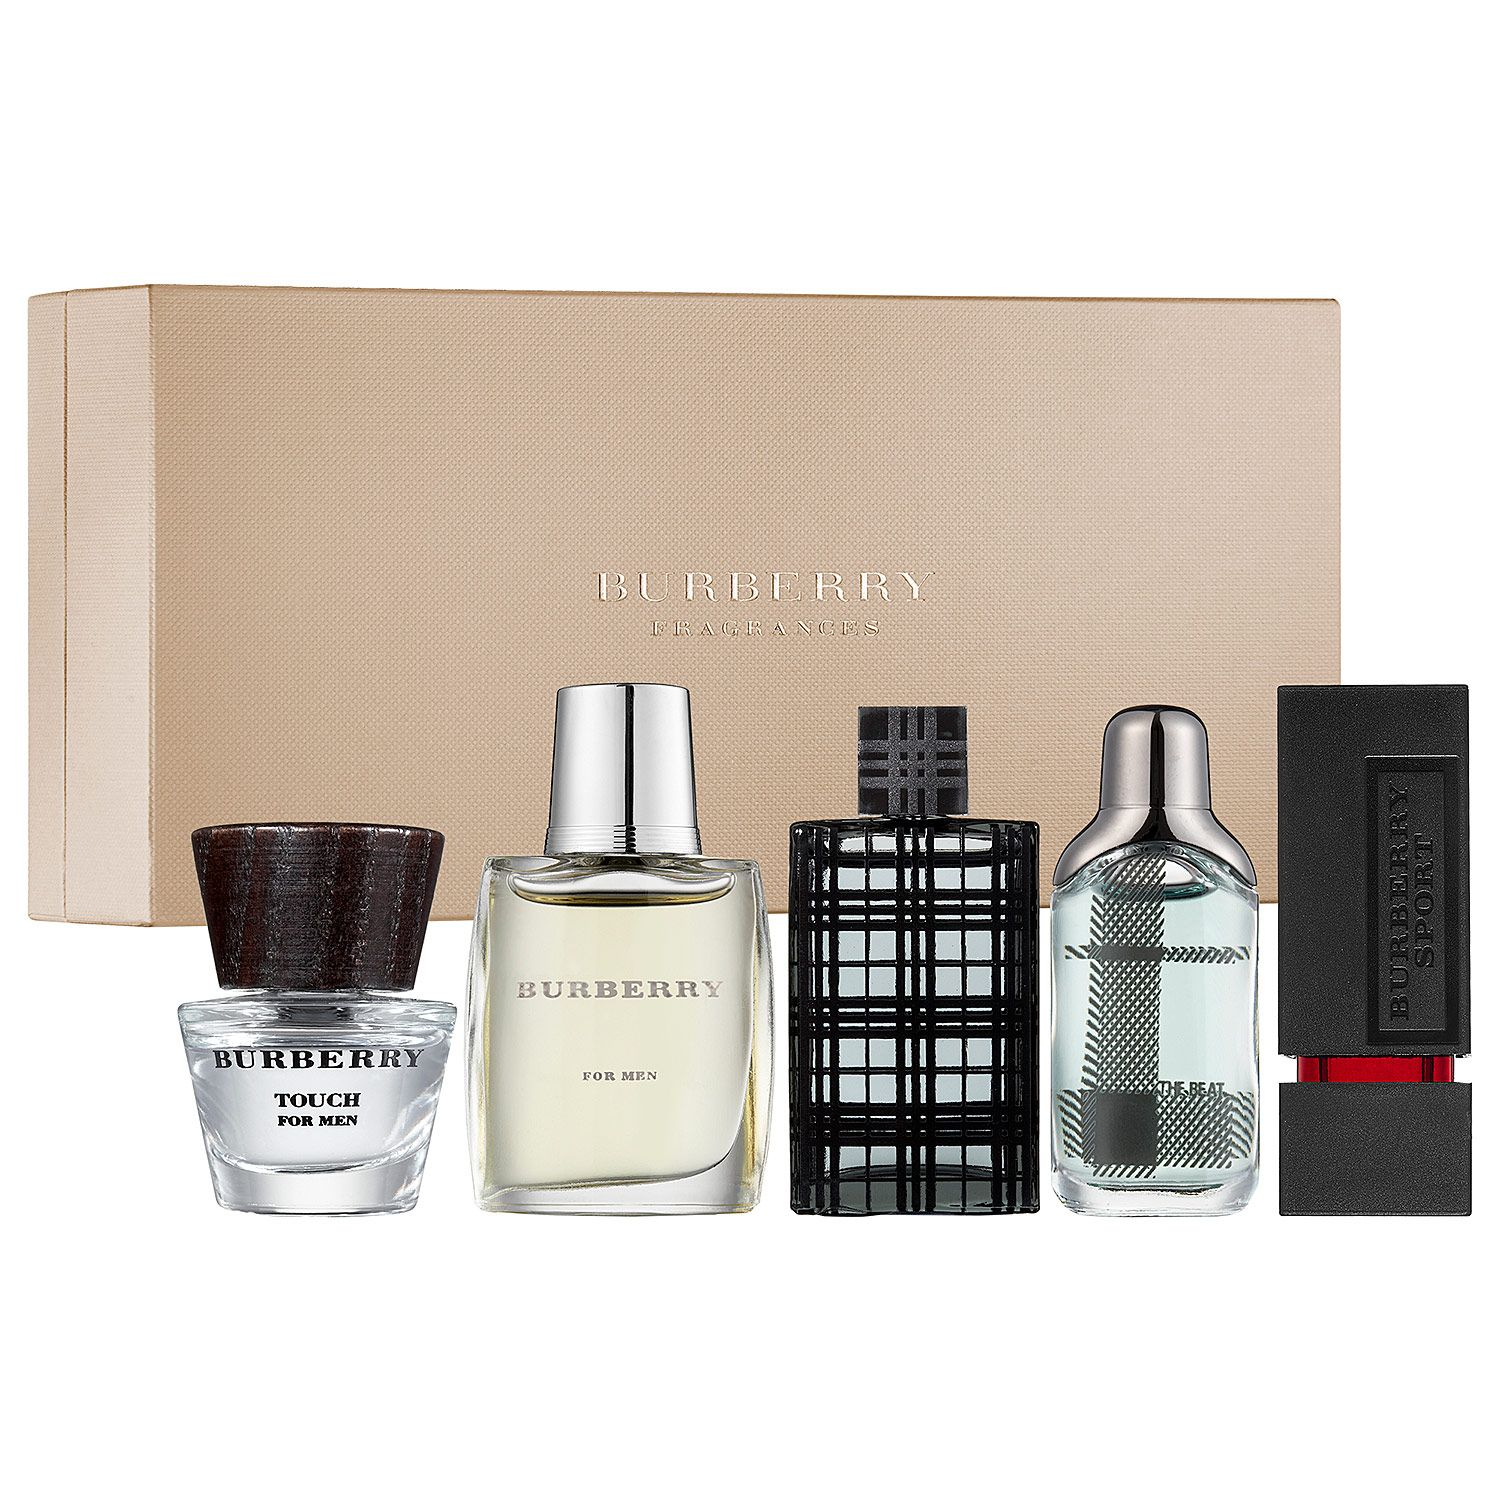 Burberry Men s Mini Coffret  Sephora  giftsforhim  gifts   Gifts for ... 5c9f13b912b